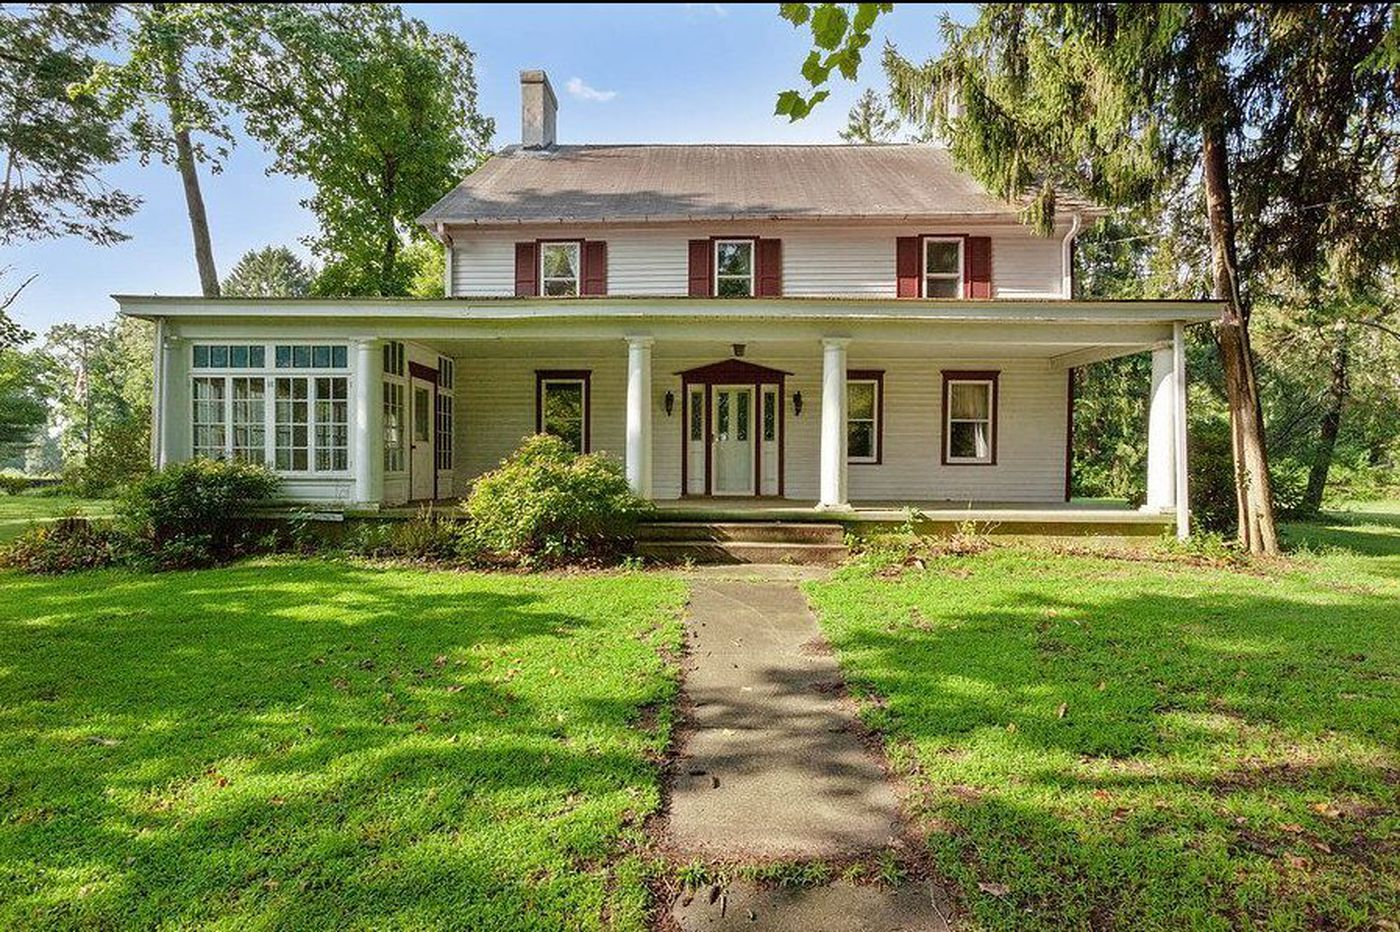 On the market: Historic family home in Medford Farms for $399,000